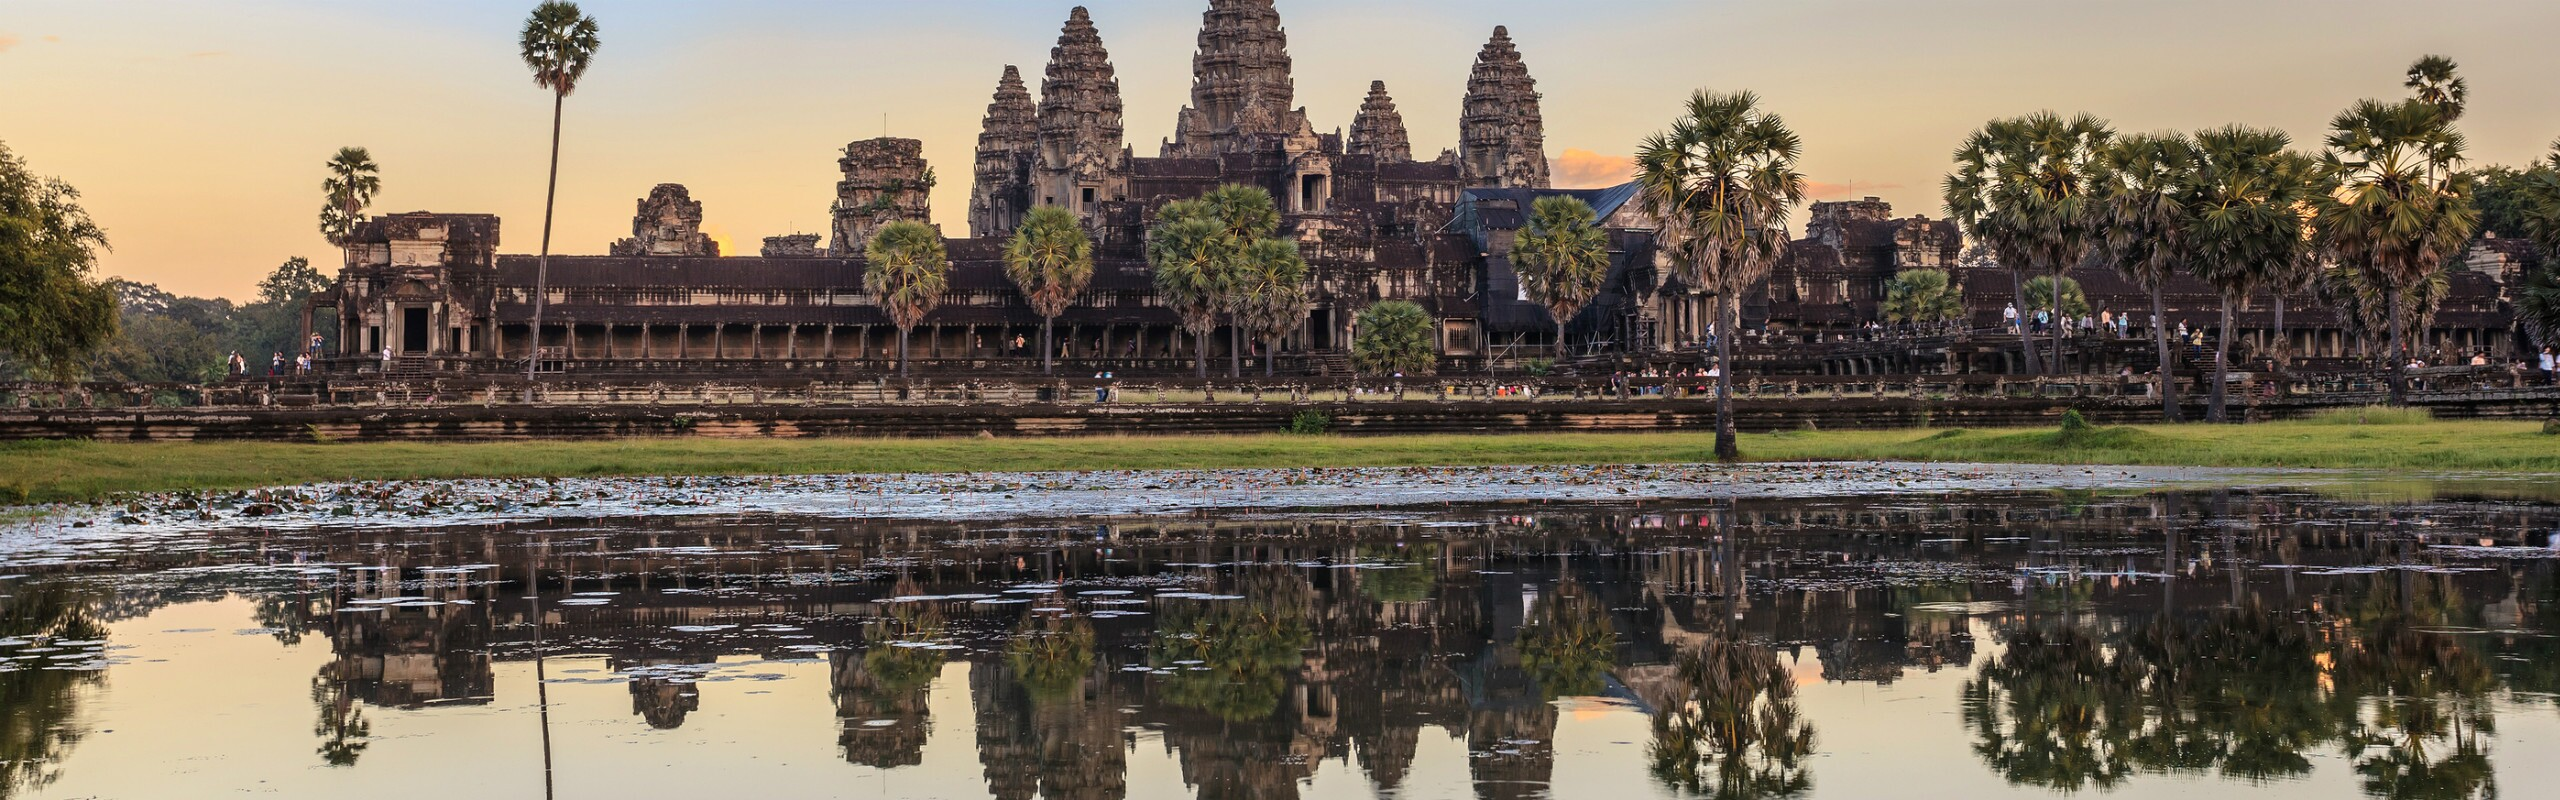 How to Plan a Trip to Angkor Wat